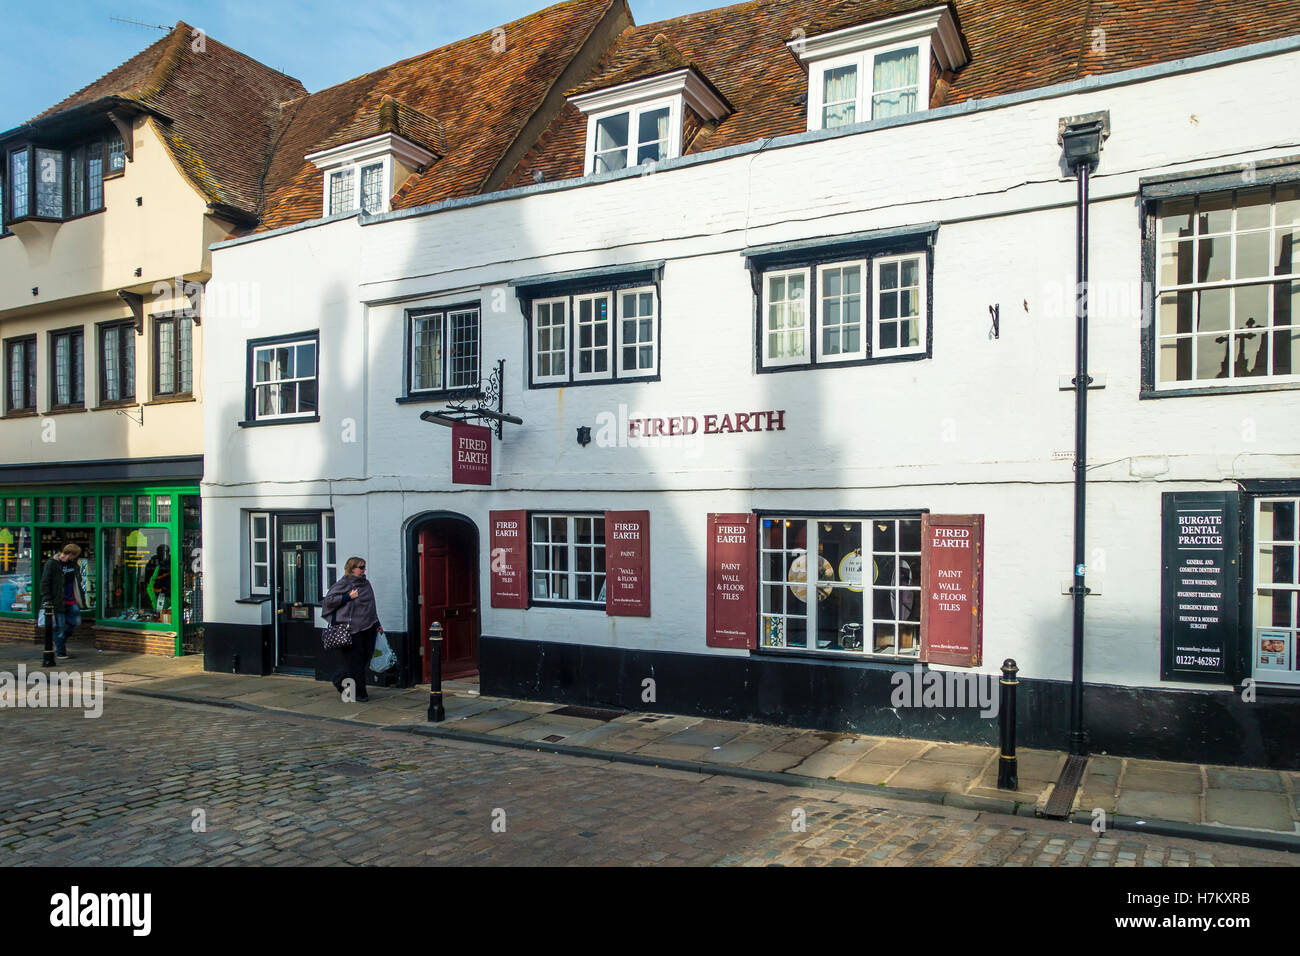 Fired Earth Specialist Paint Wall and Floor Tile Shop Supplier Burgate Canterbury Kent - Stock Image